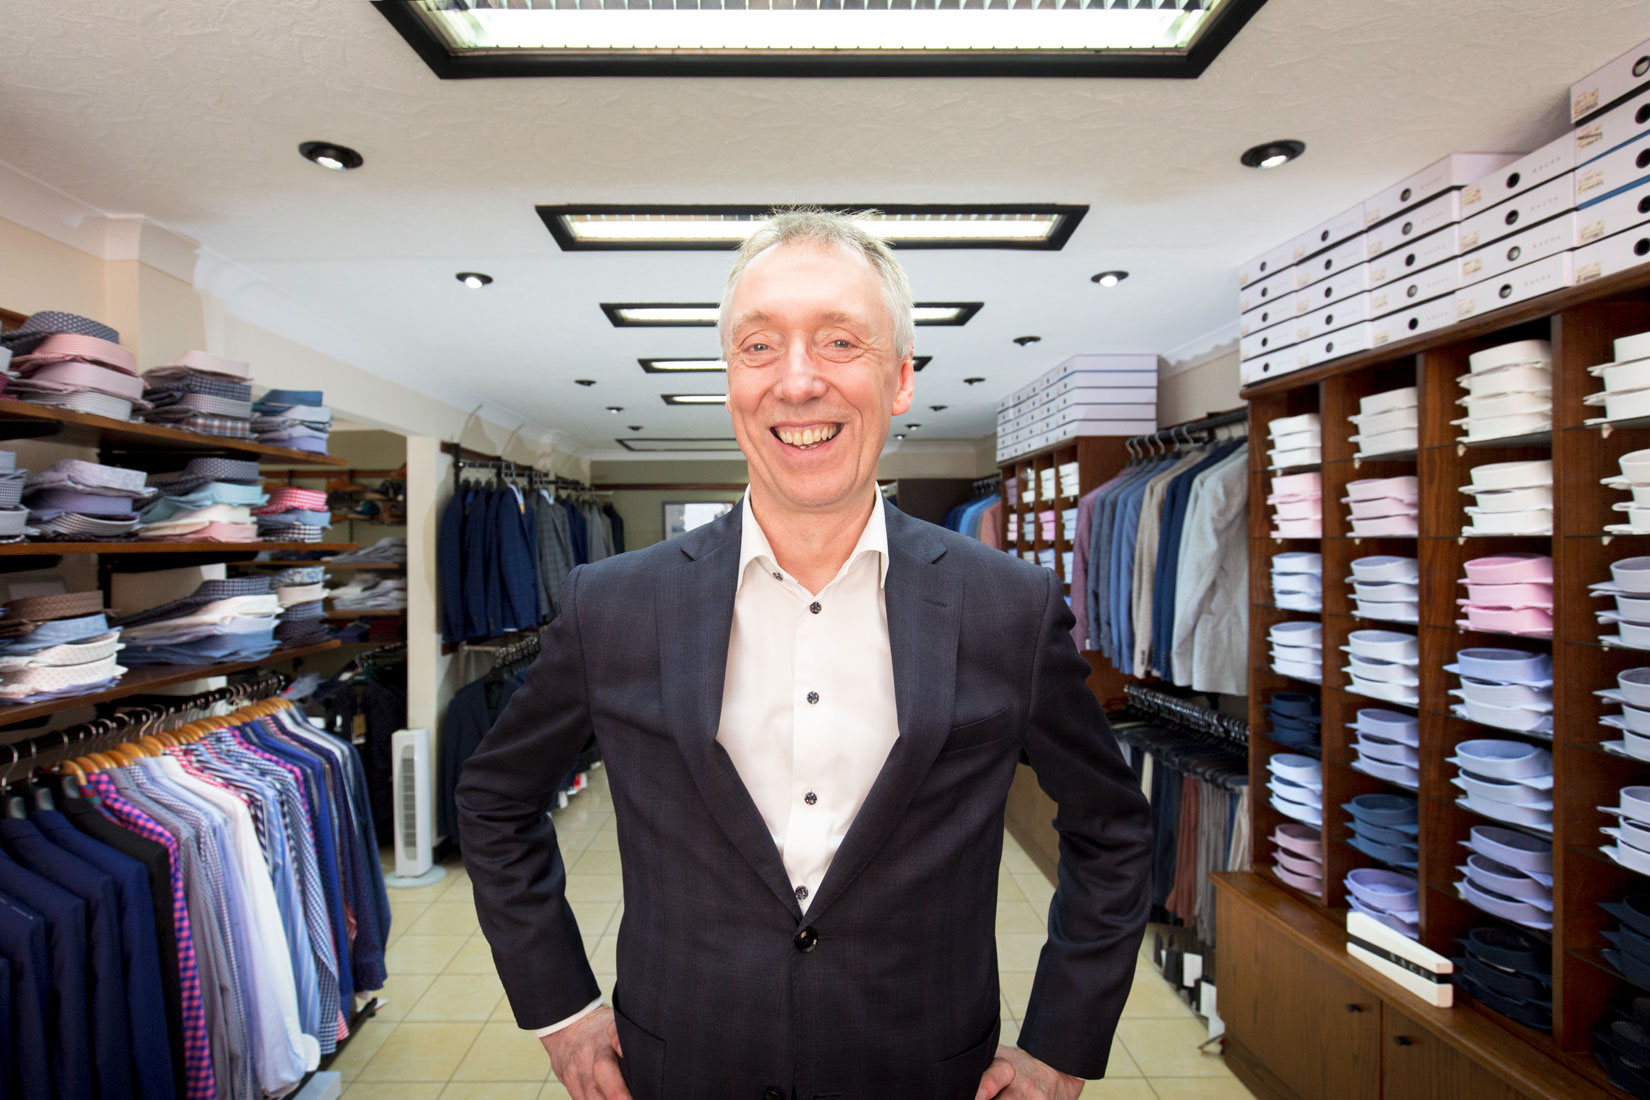 personal brand photography of Draper in a gentleman's outfitters store